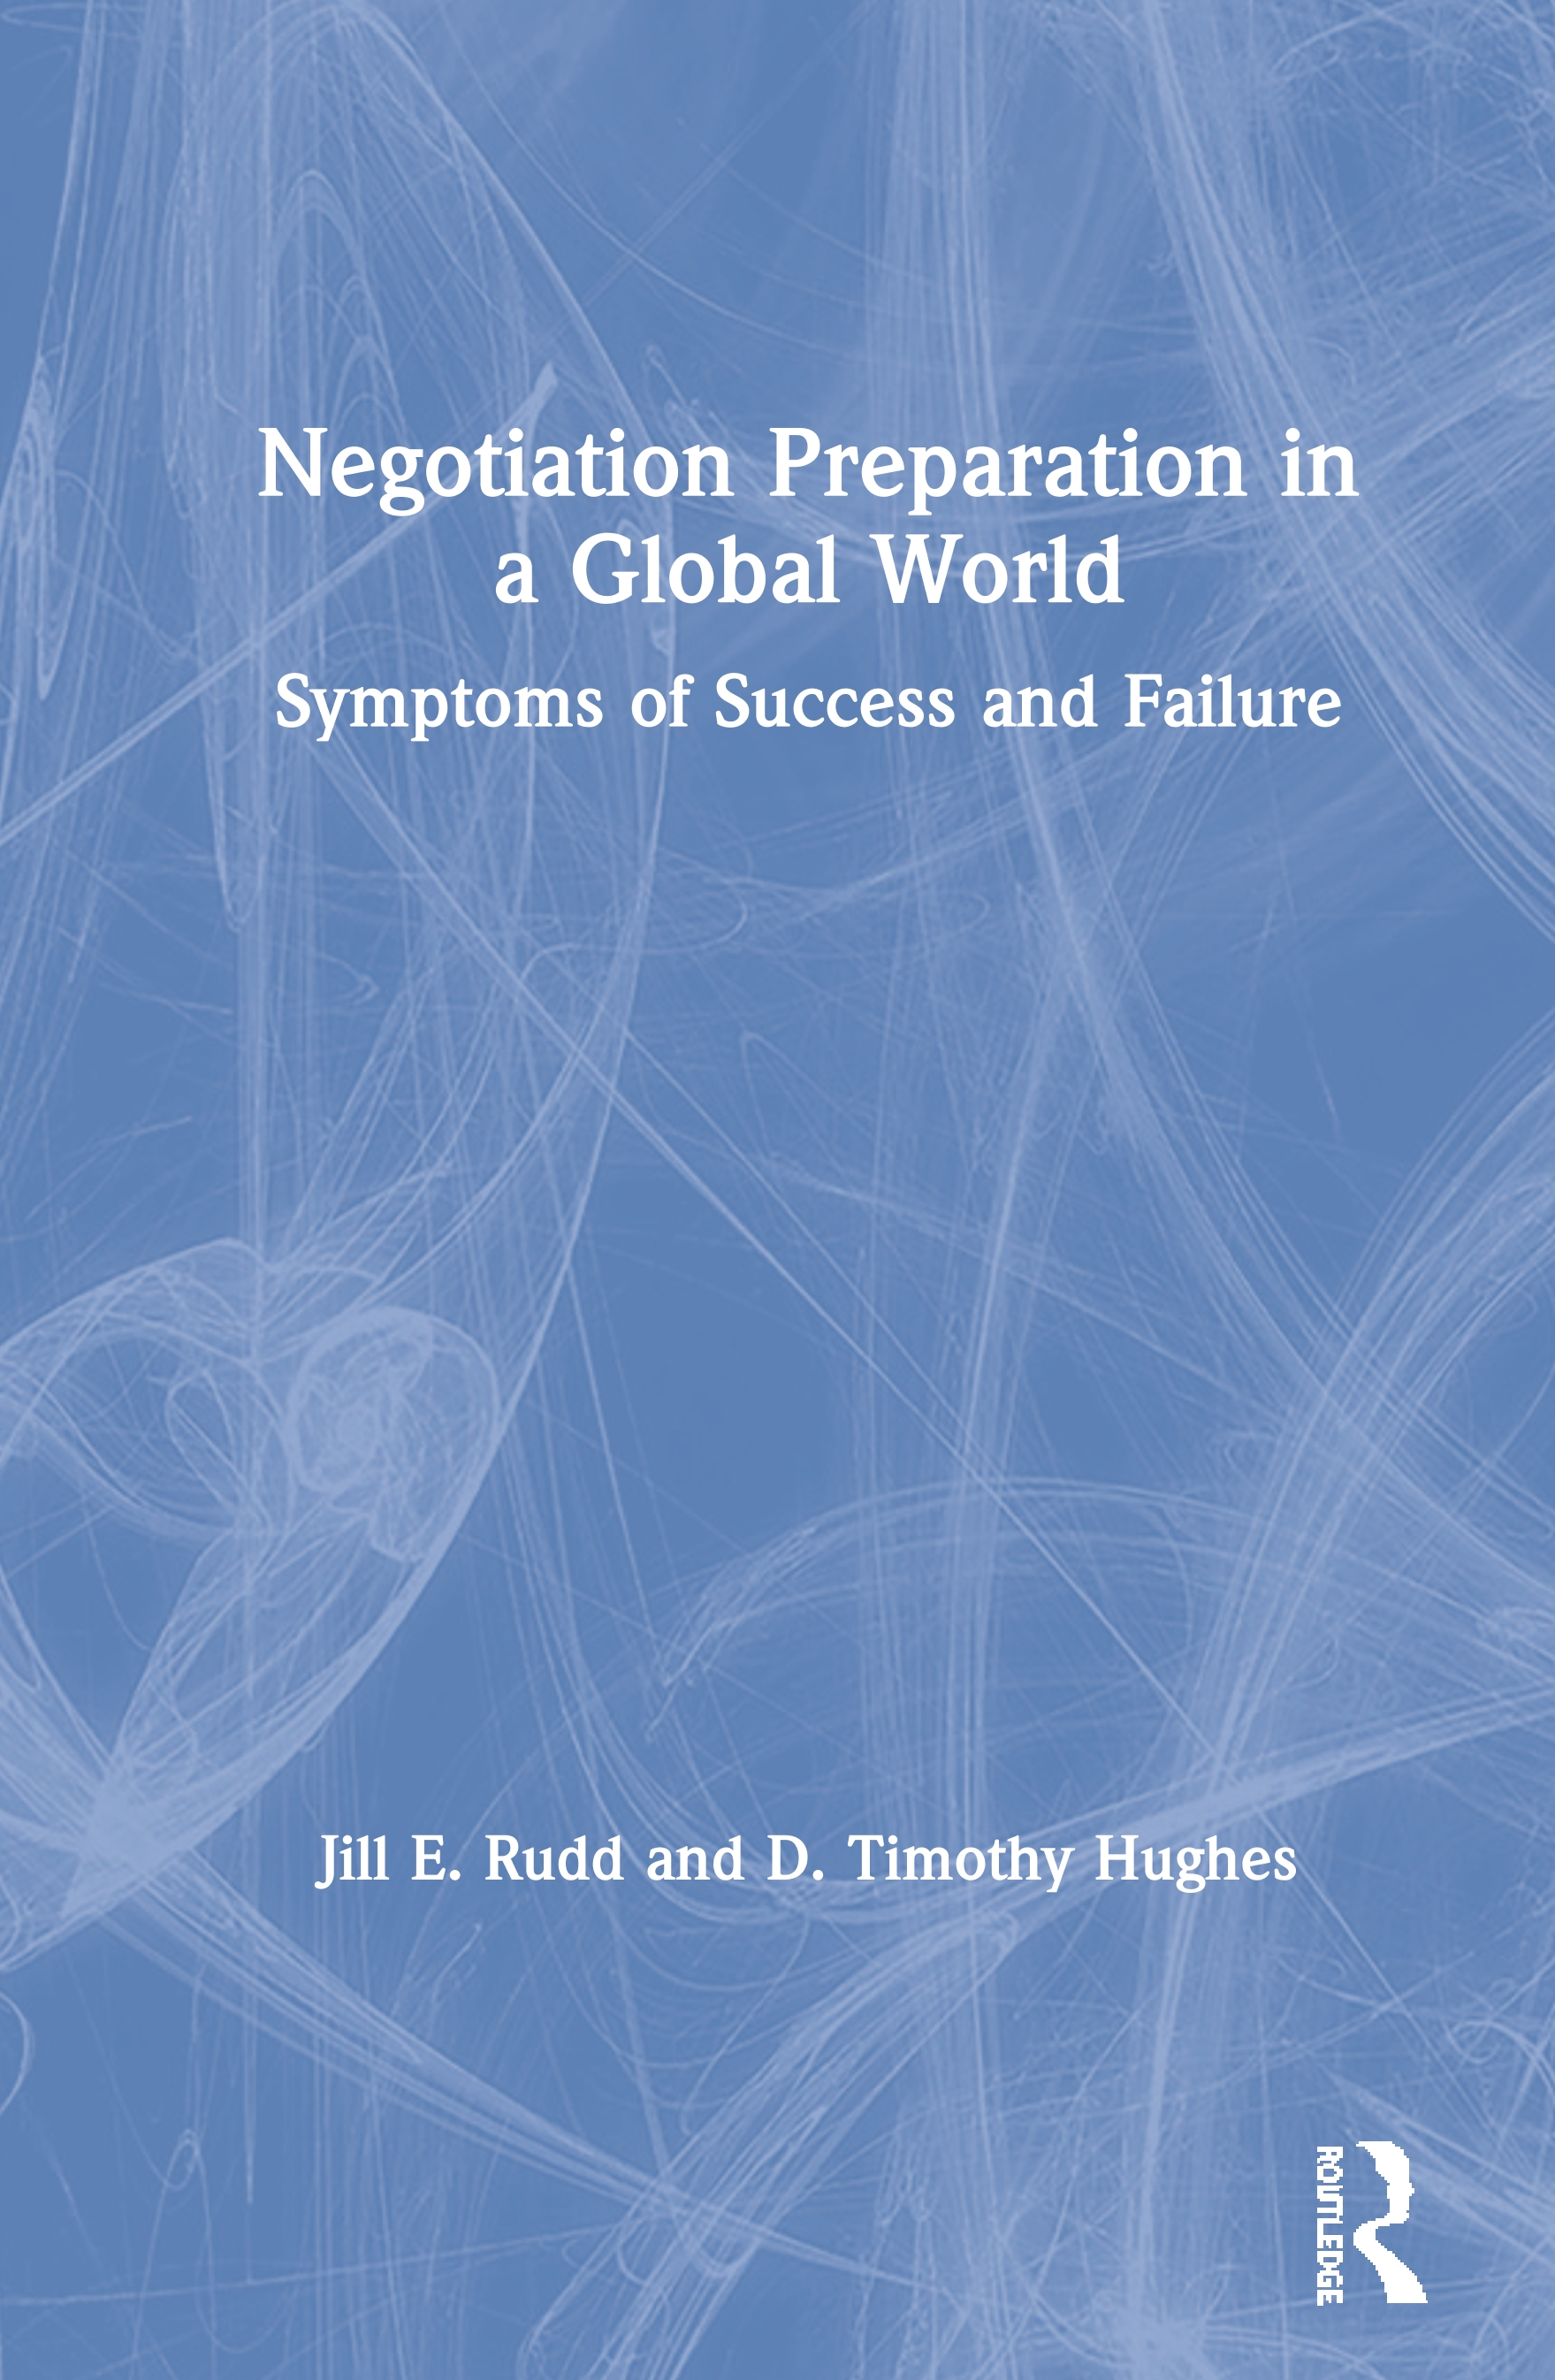 Negotiation Preparation in a Global World: Symptoms of Success and Failure book cover